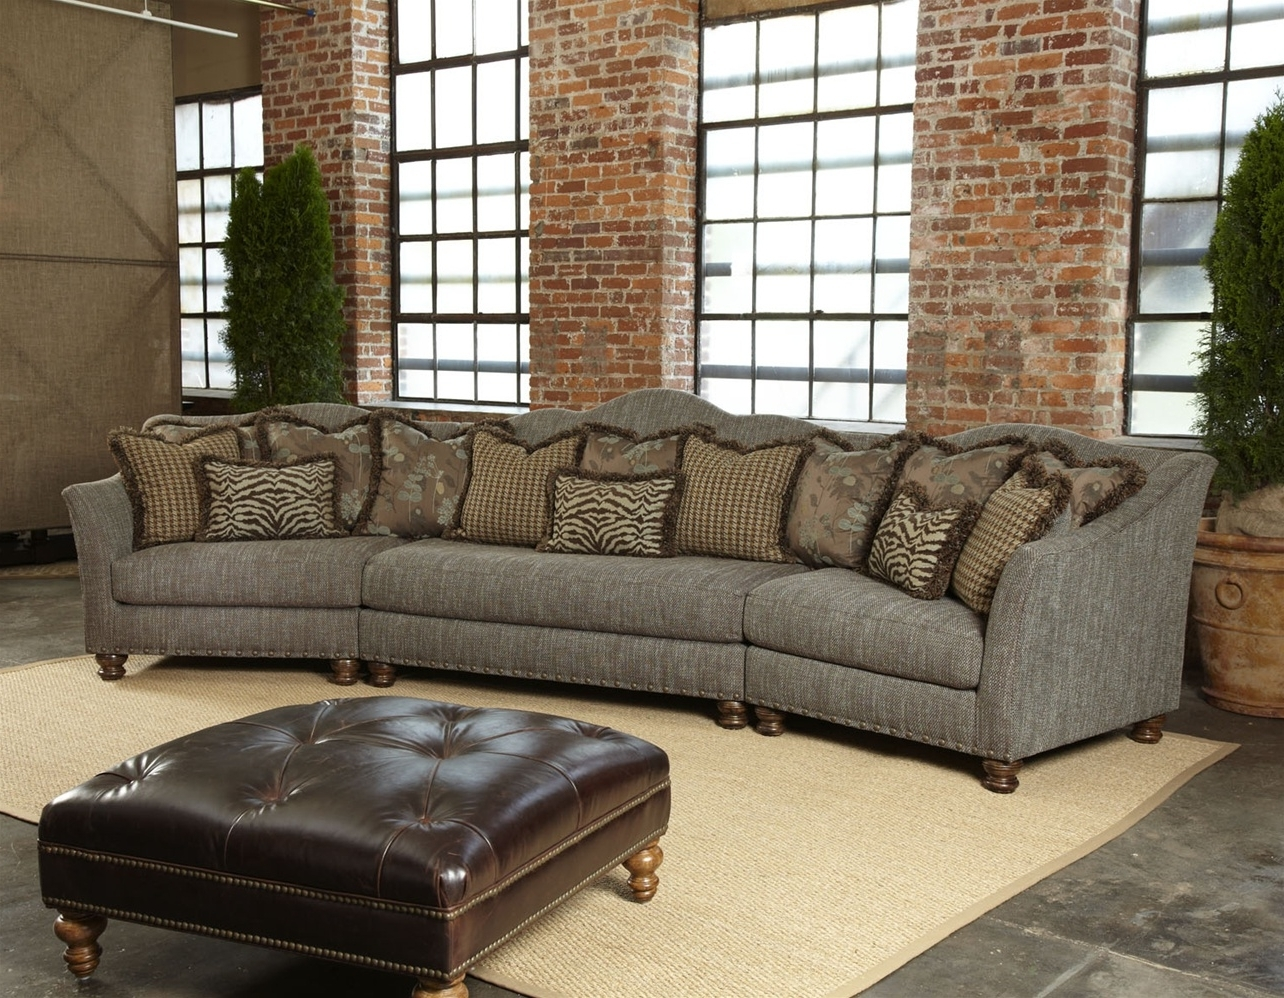 High End Sofas With Regard To Current High End Furniture (View 12 of 15)